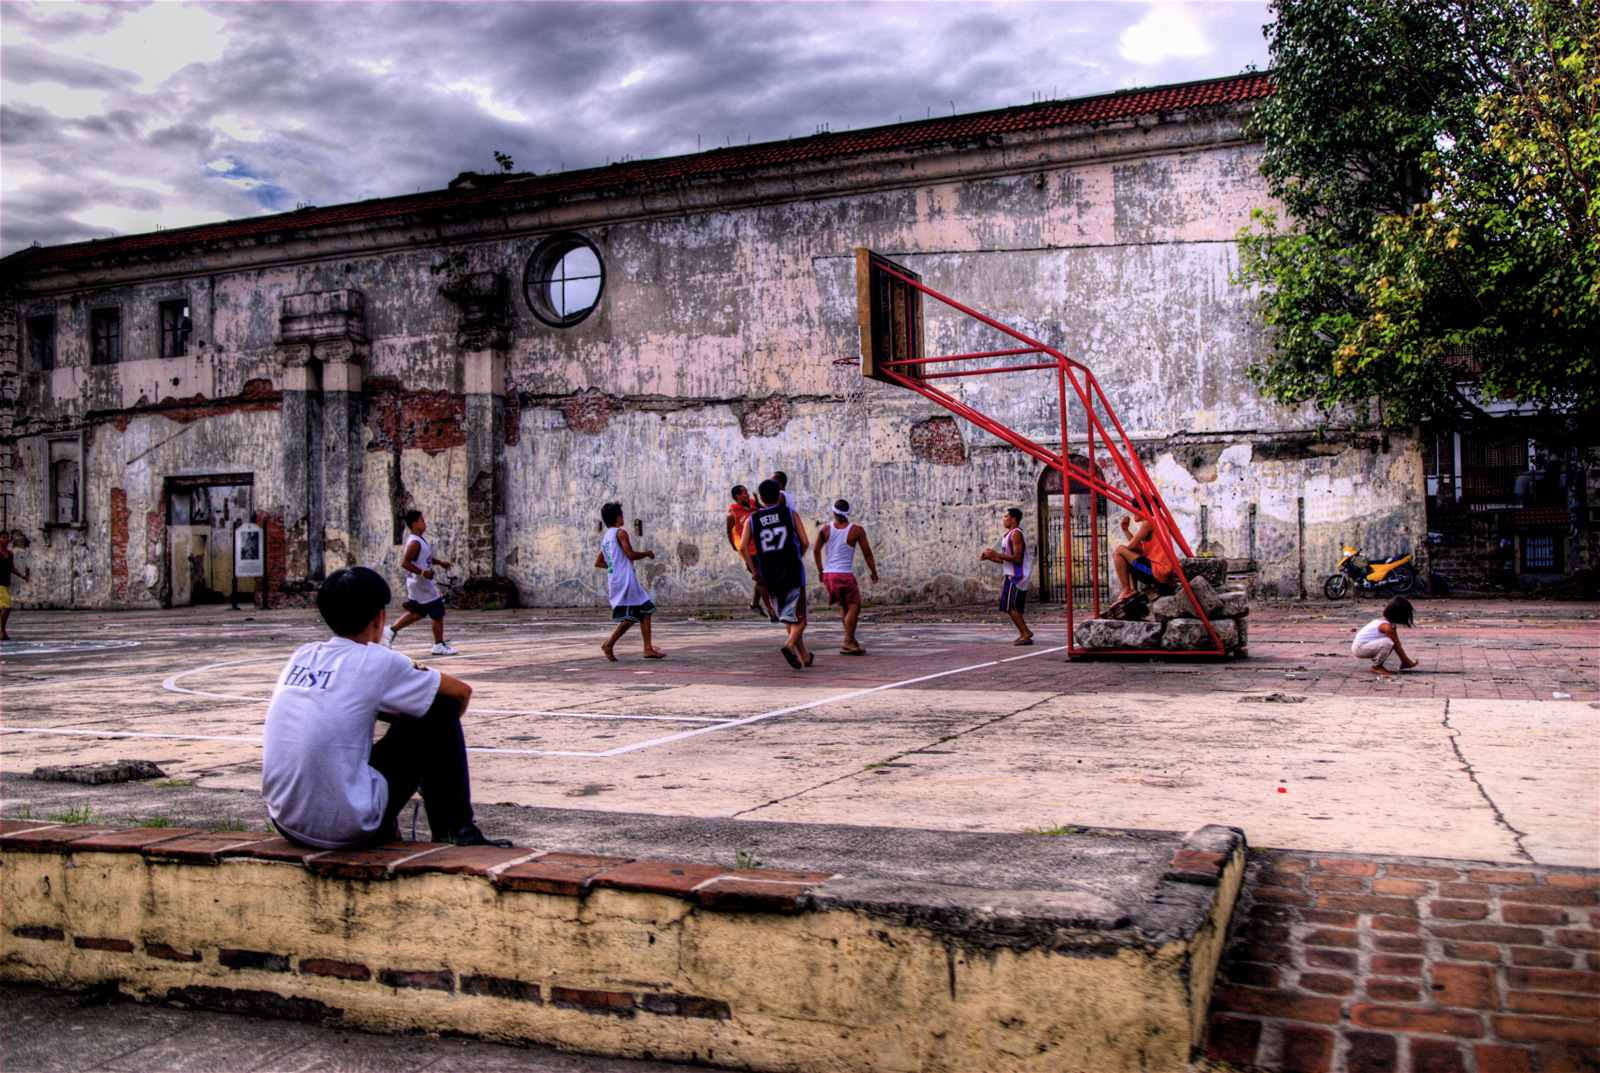 Transracial Could Be The Next Big Thing In 2018 Basketball in Intramuros